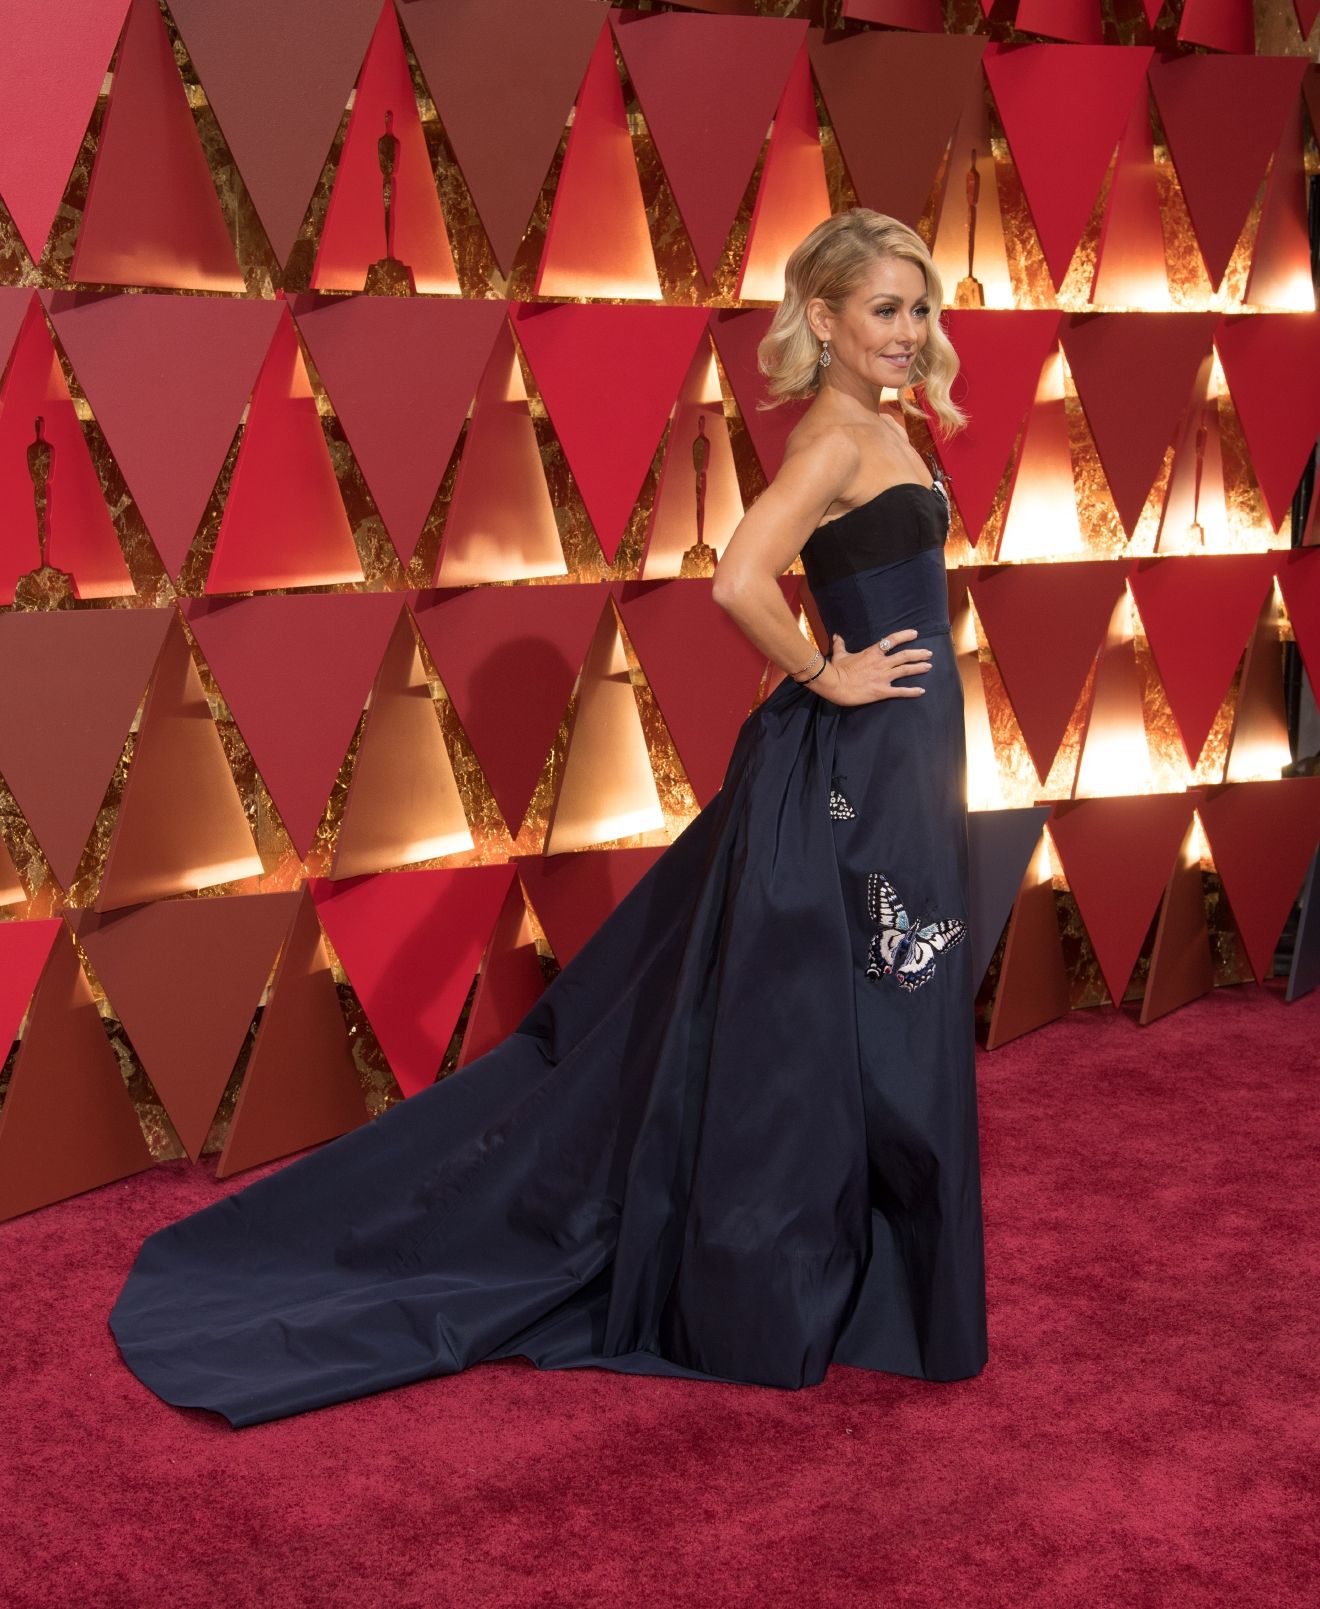 Kelly Ripa arrives on the red carpet of The 89th Oscars® at the Dolby® Theatre in Hollywood, CA on Sunday, February 26, 2017. (Michael Yada / ©A.M.P.A.S.)